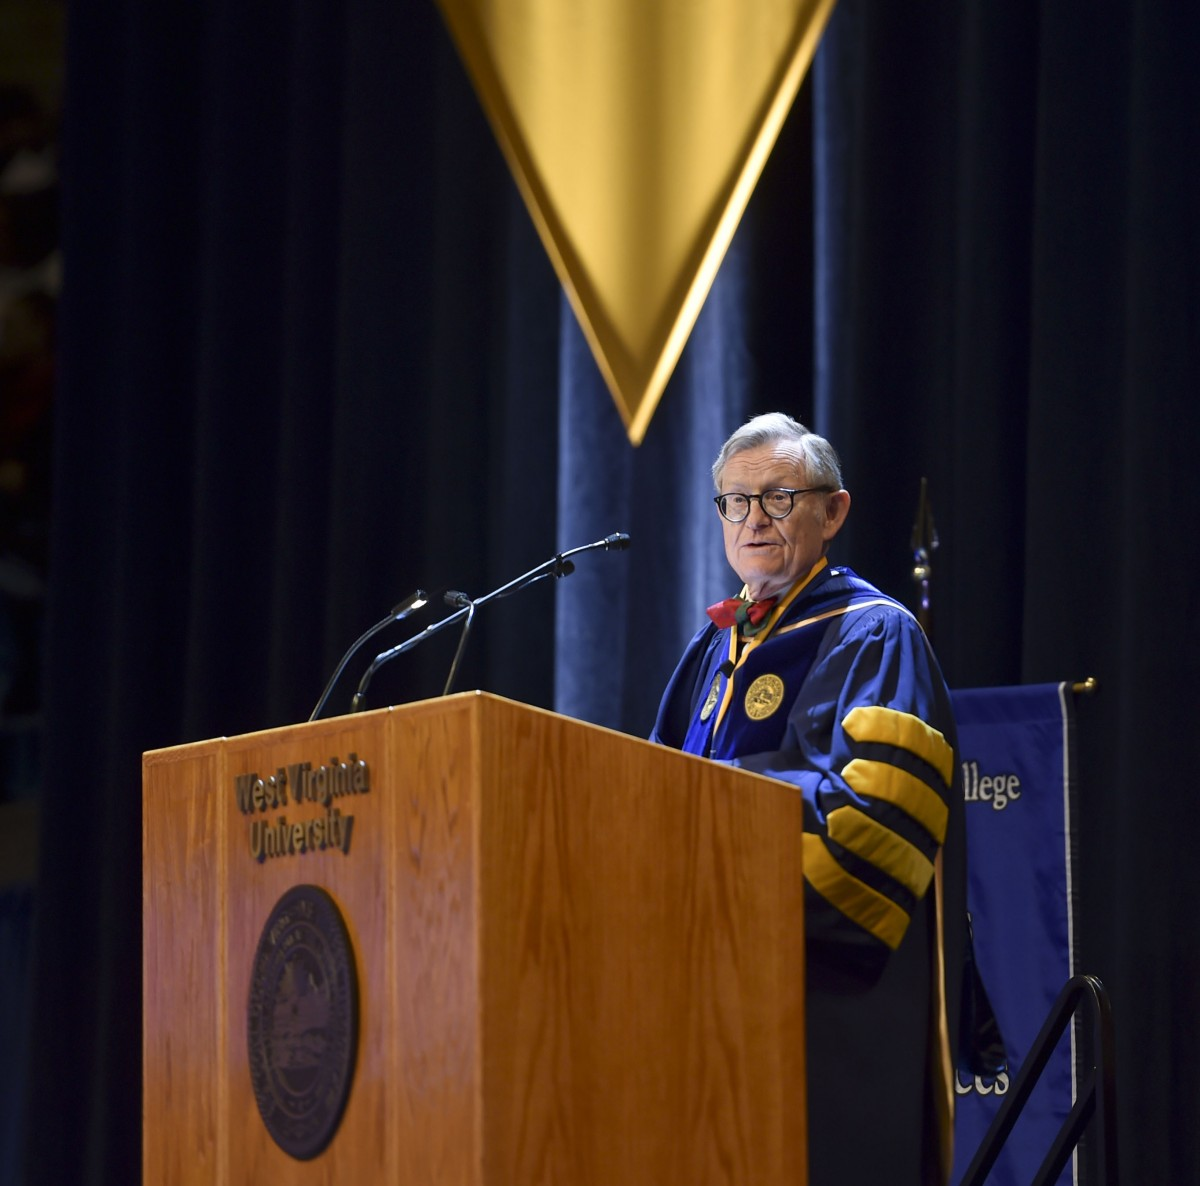 gee at 2018 commencement